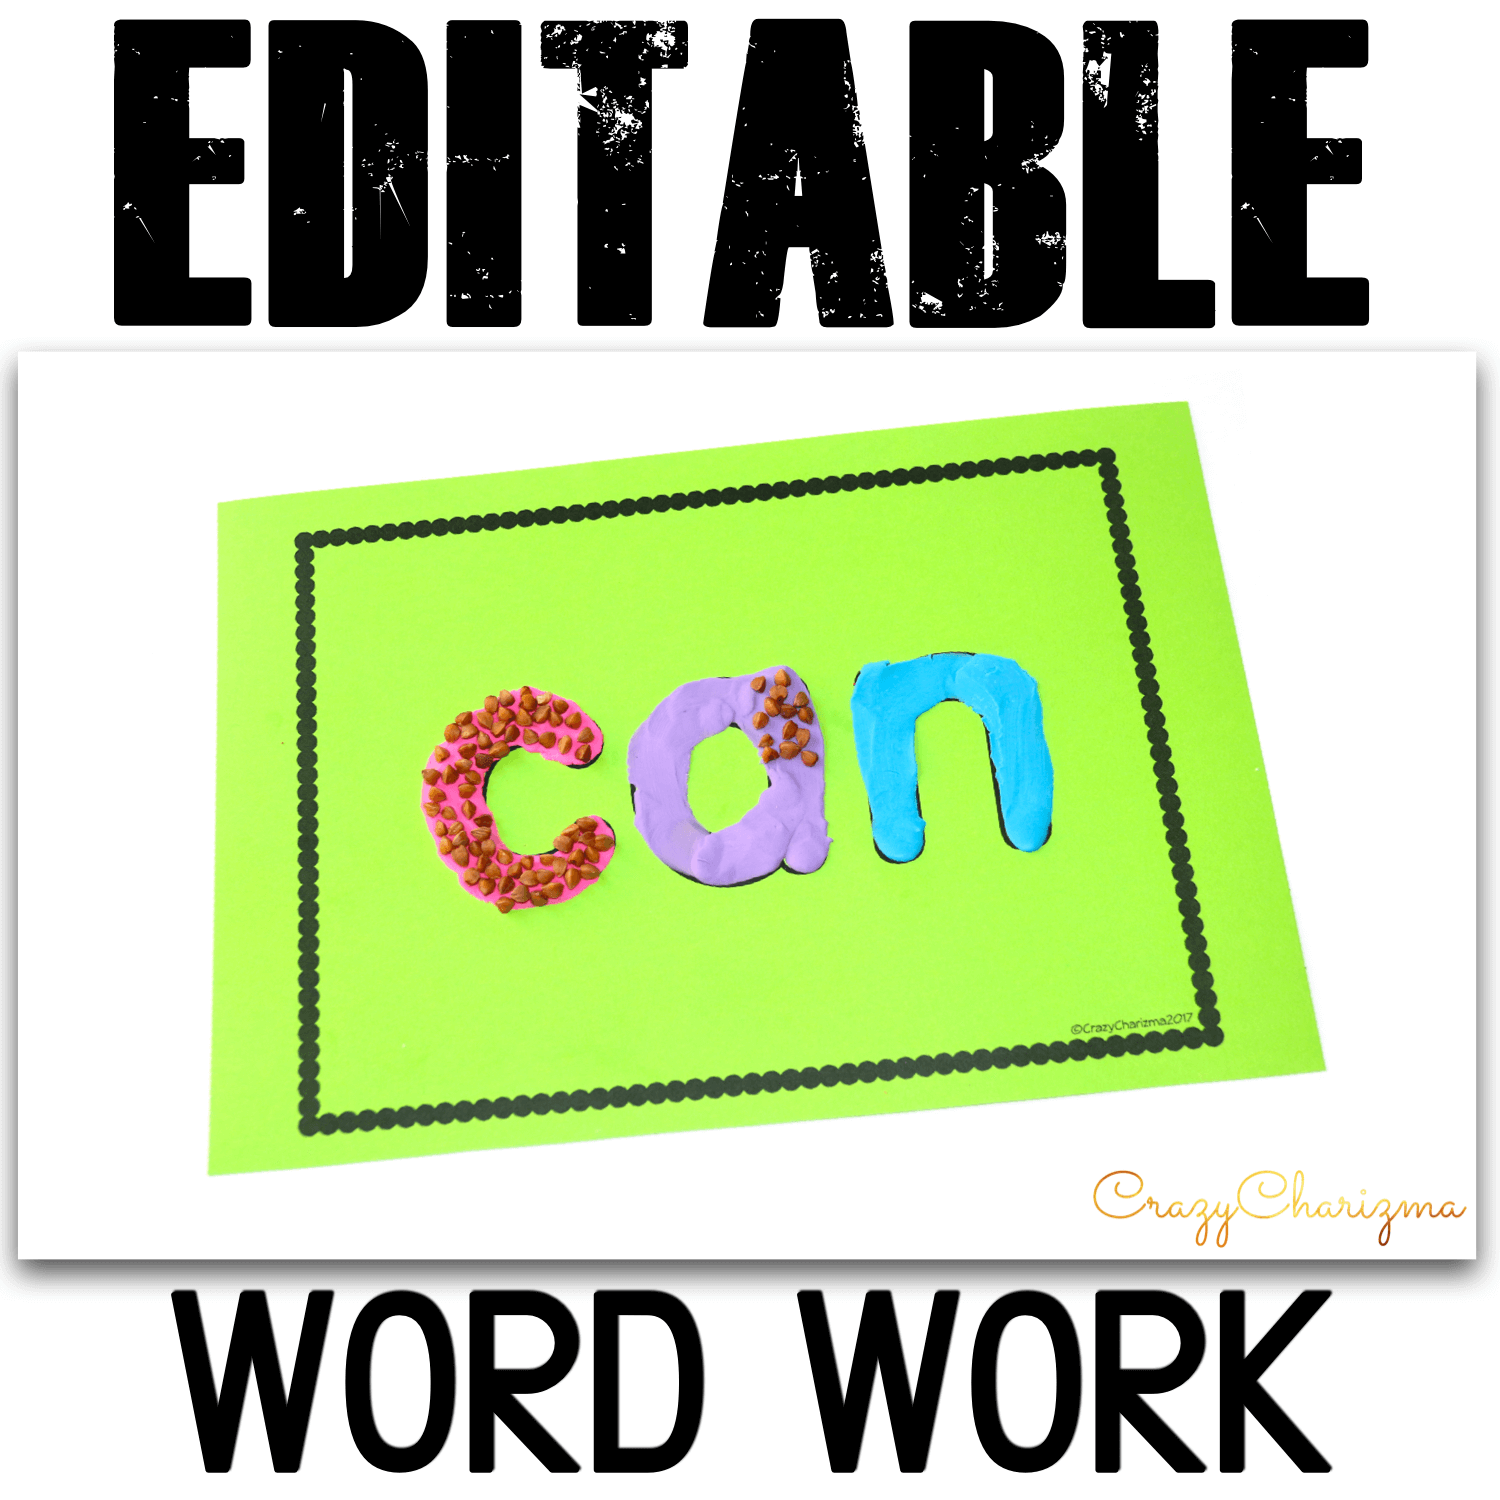 Need hands on activities to practice any words? Use playdough mats and let kids read and use different manipulatives to brighten the words up. The EDITABLE VERSION is available. Create your own playdough mats!